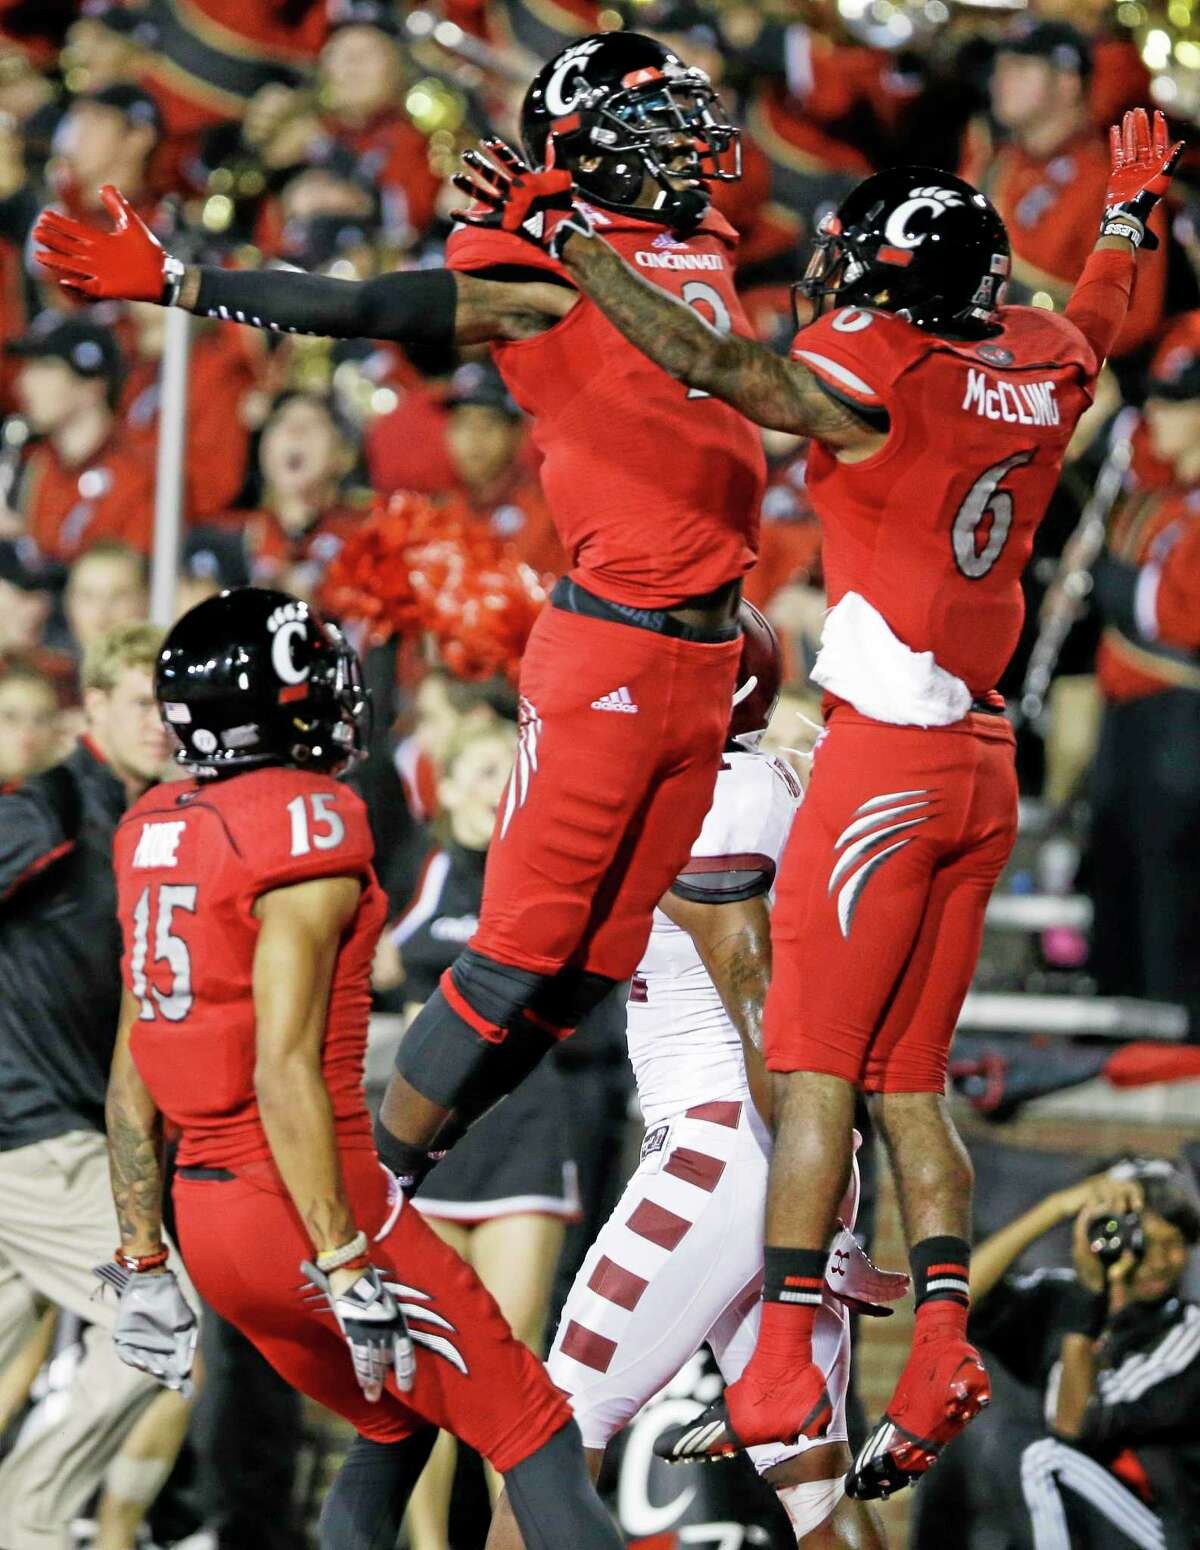 Cincinnati wide receiver Anthony McClung (6) celebrates with Mekale McKay (2) after McClung scored on a 25-yard pass against Temple on Oct. 11 in Cincinnati.